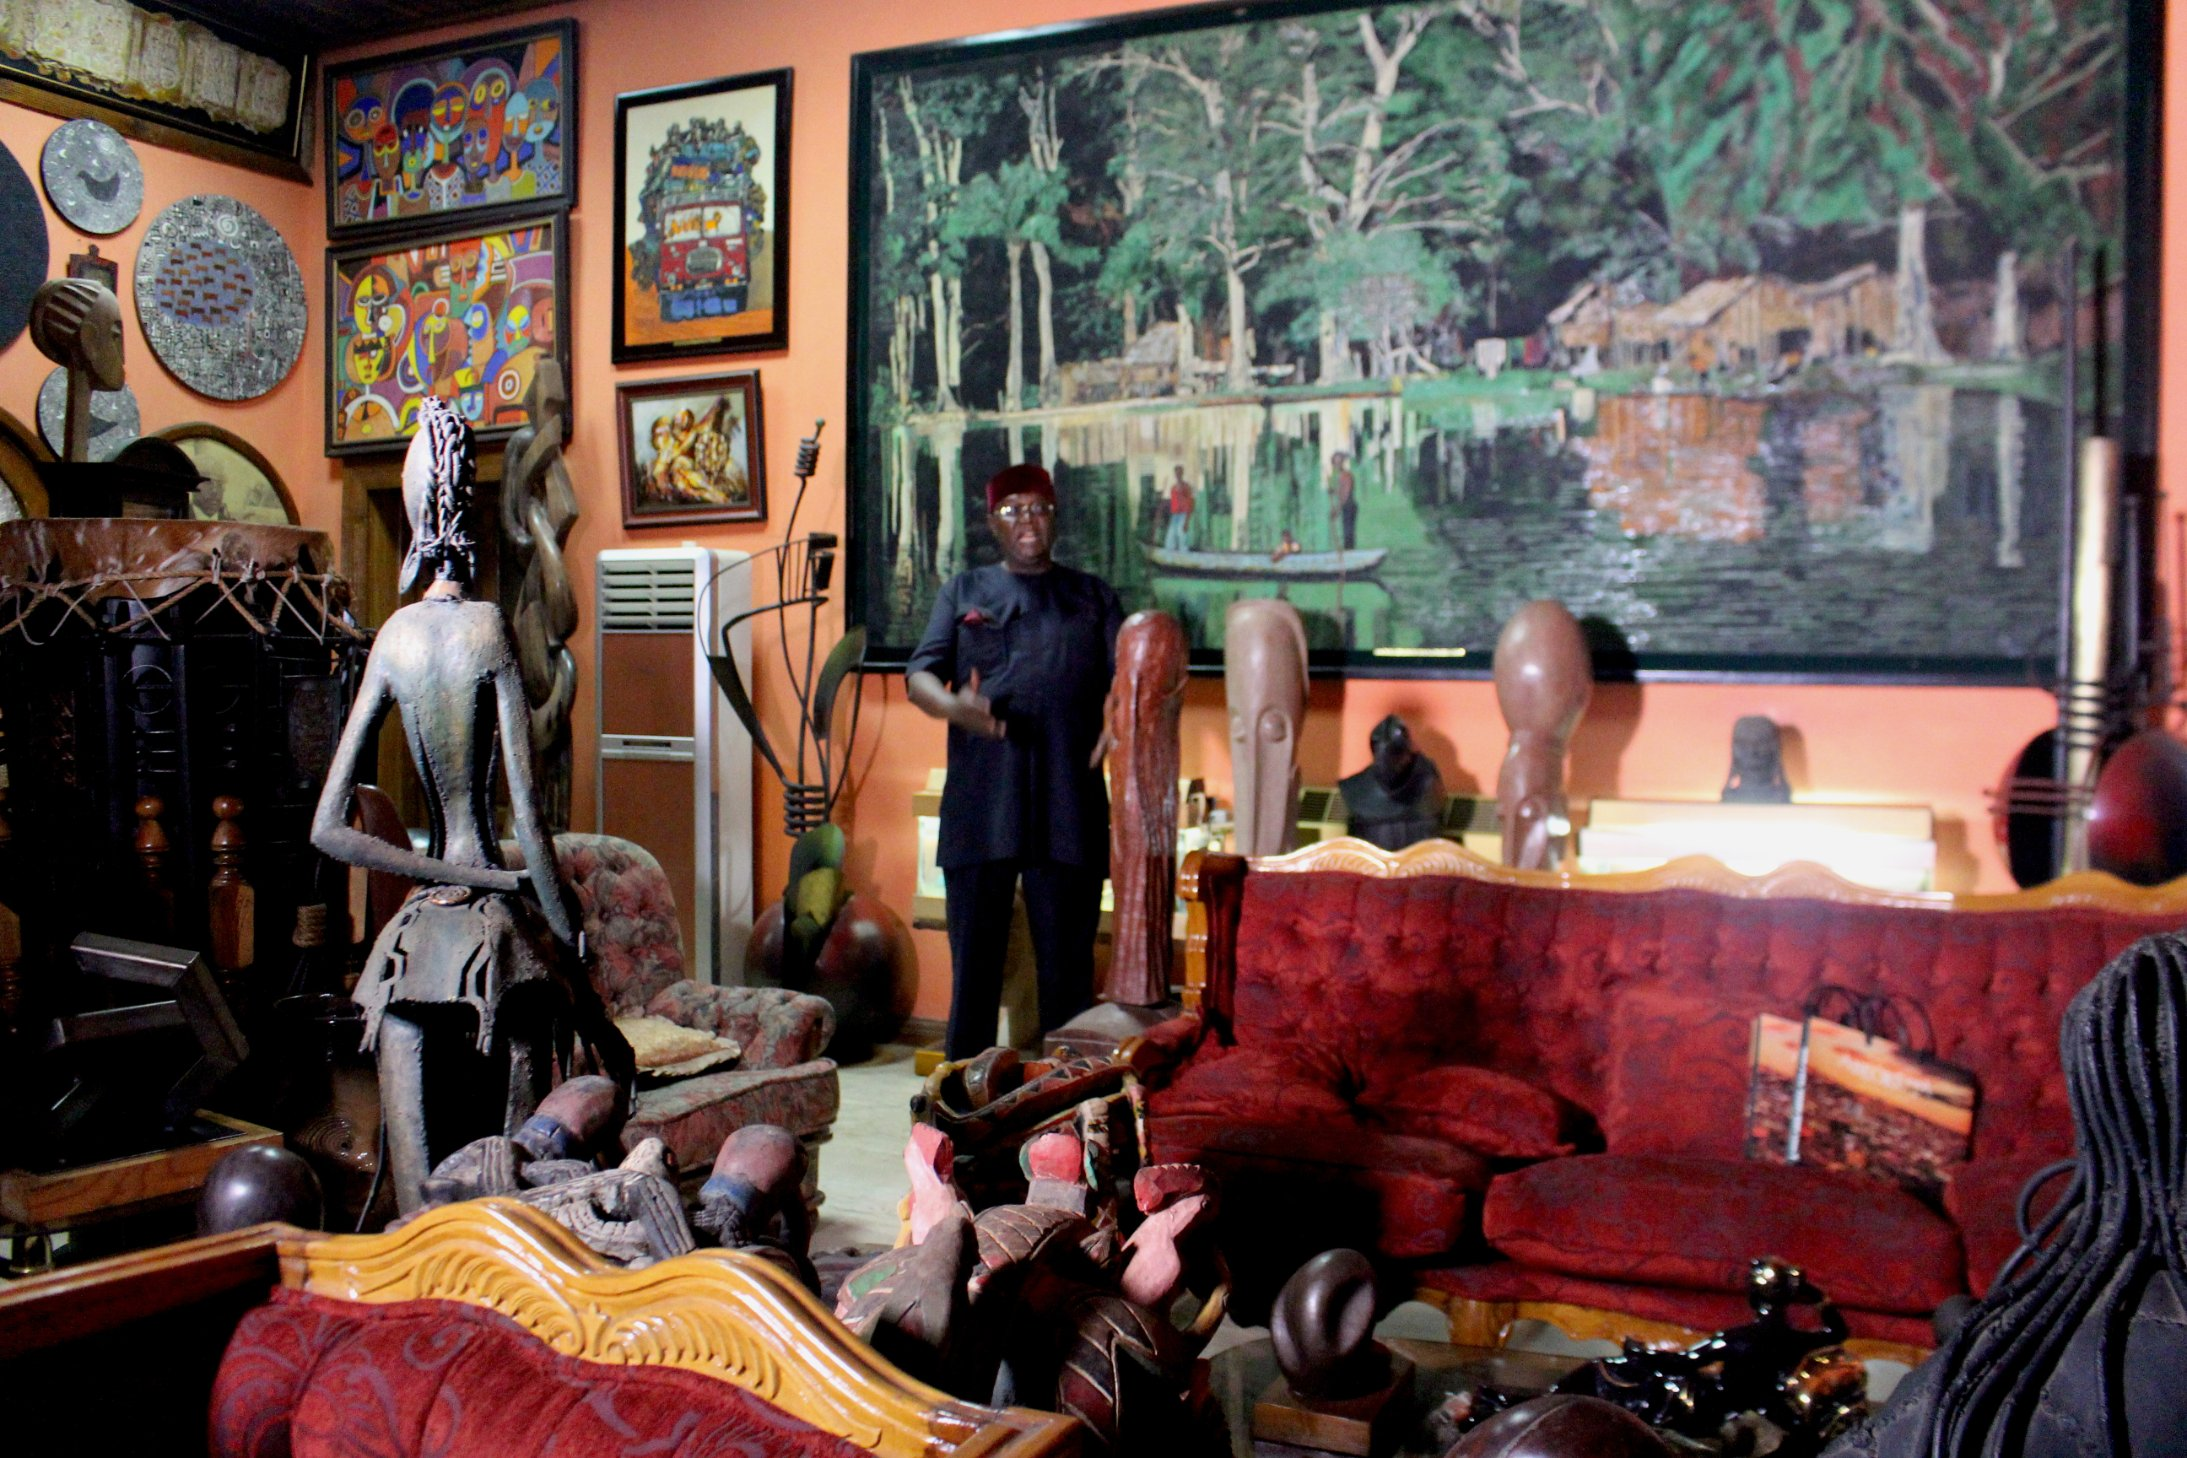 """Prince Yemisi Shyllon, CNN ARTICLE """"LOOKING FOR INVESTMENT? AFRICAN ART IS HOTTER THAN GOLD"""""""